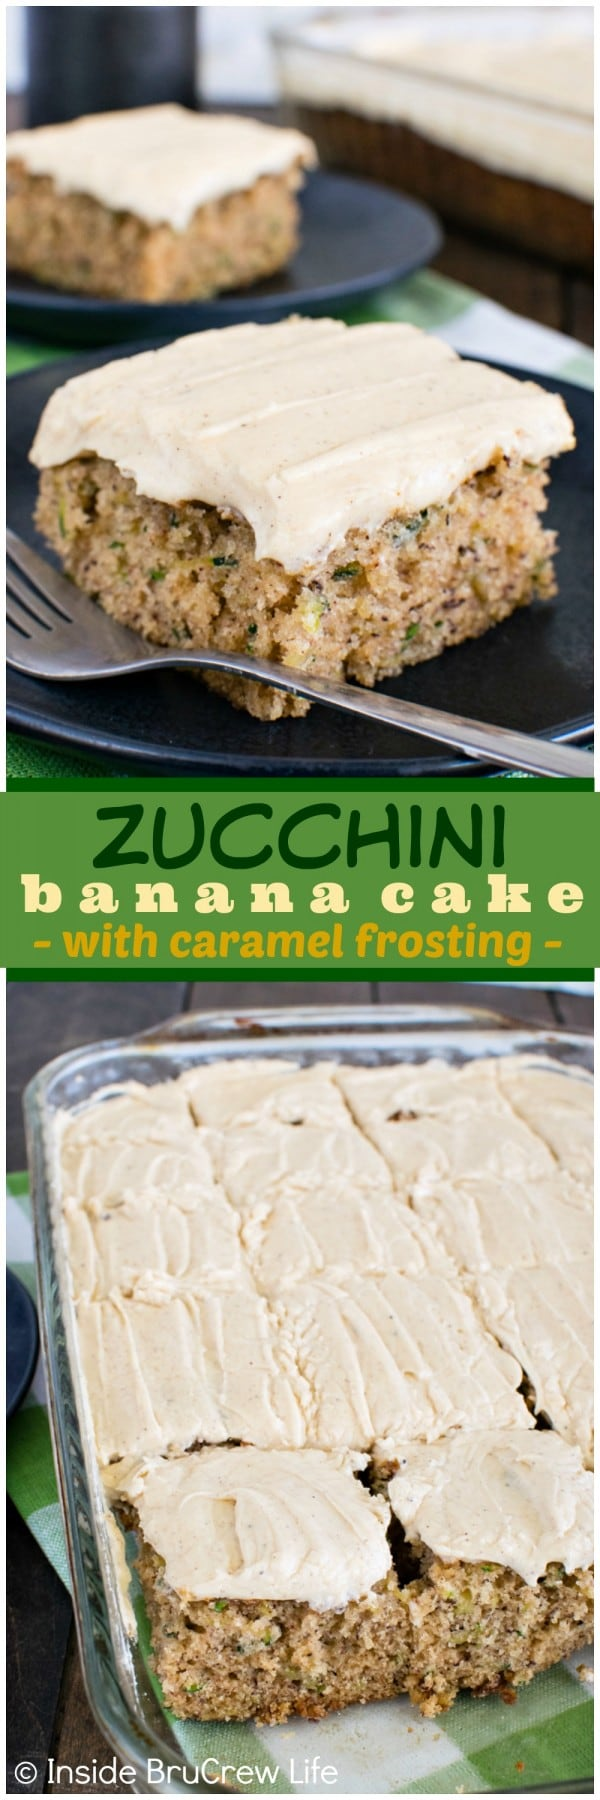 Two pictures of zucchini banana cake collaged together with a green text box